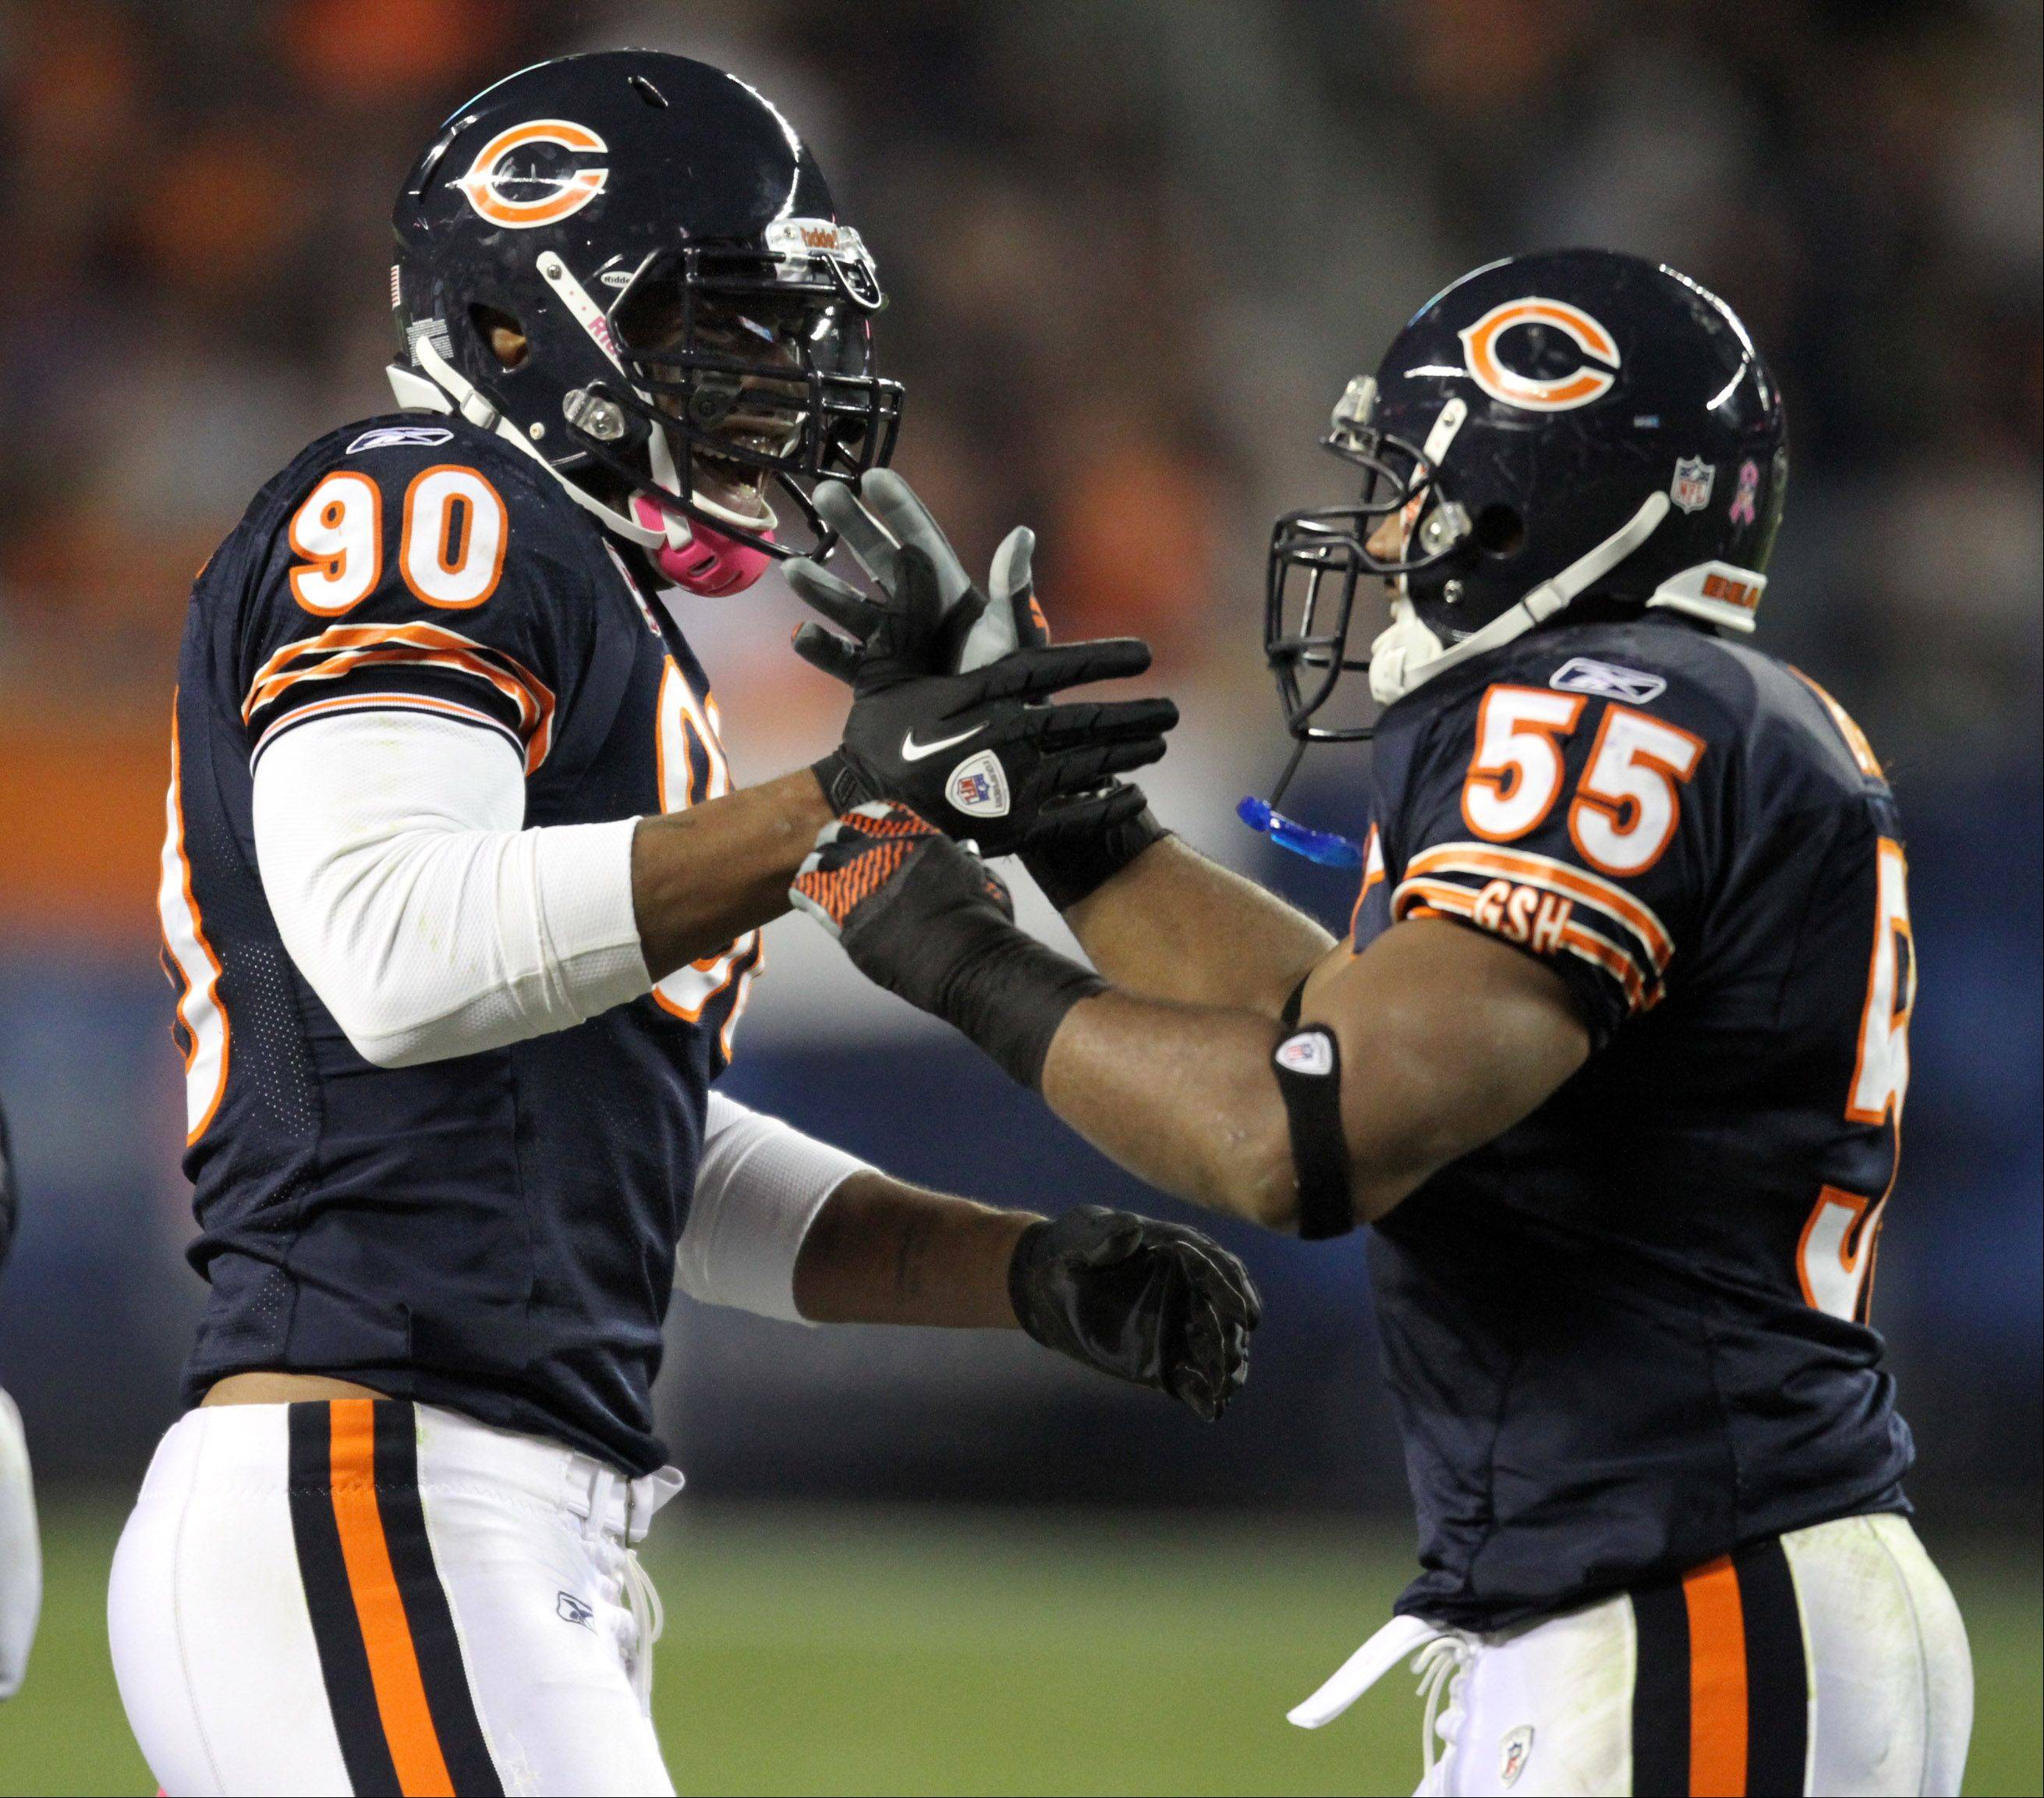 George Leclaire/gleclaire@dailyherald.com � Chicago Bears Julius Peppers celebrates, with Lance Briggs, sacking Minnesota Vikings Minnesota Vikings quarterback Donovan McNabb in the third quarter at Soldier Field in Chicago on Sunday, October 16th.